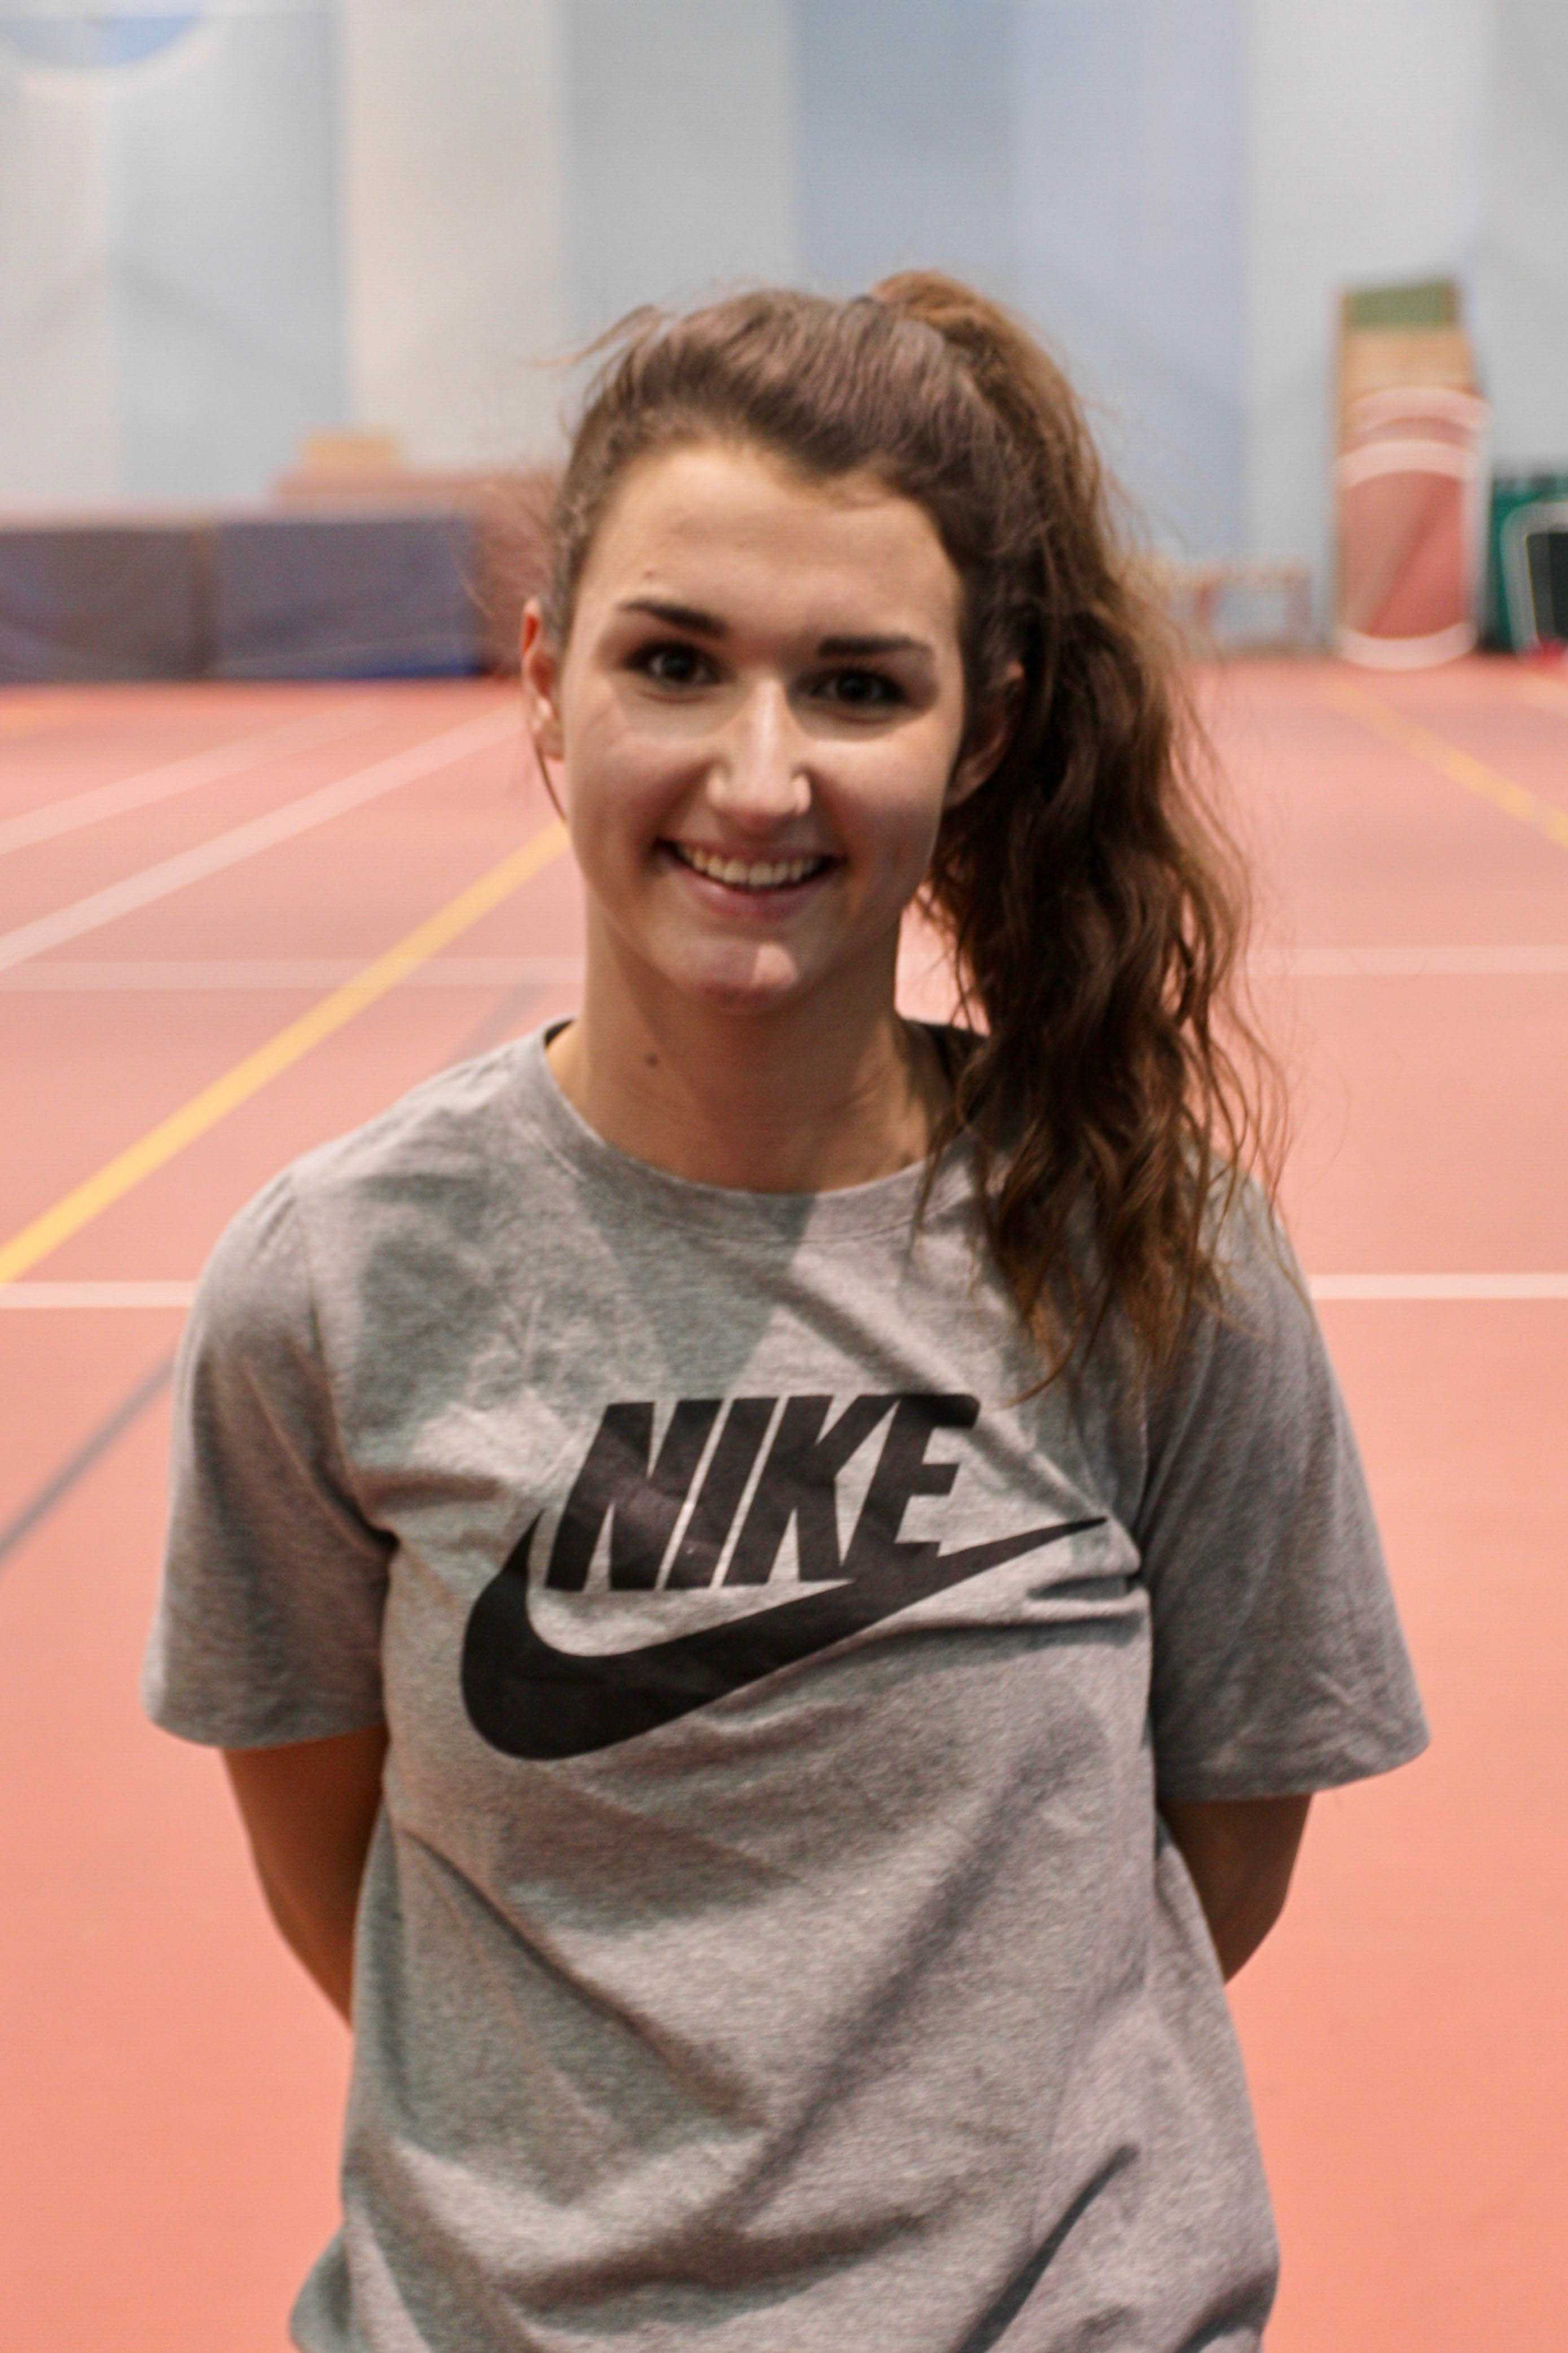 Junior Ali Anderson is looking to get to nationals in the 800-meter after earning a national provisonal time of 2:15.99 over the weekend.